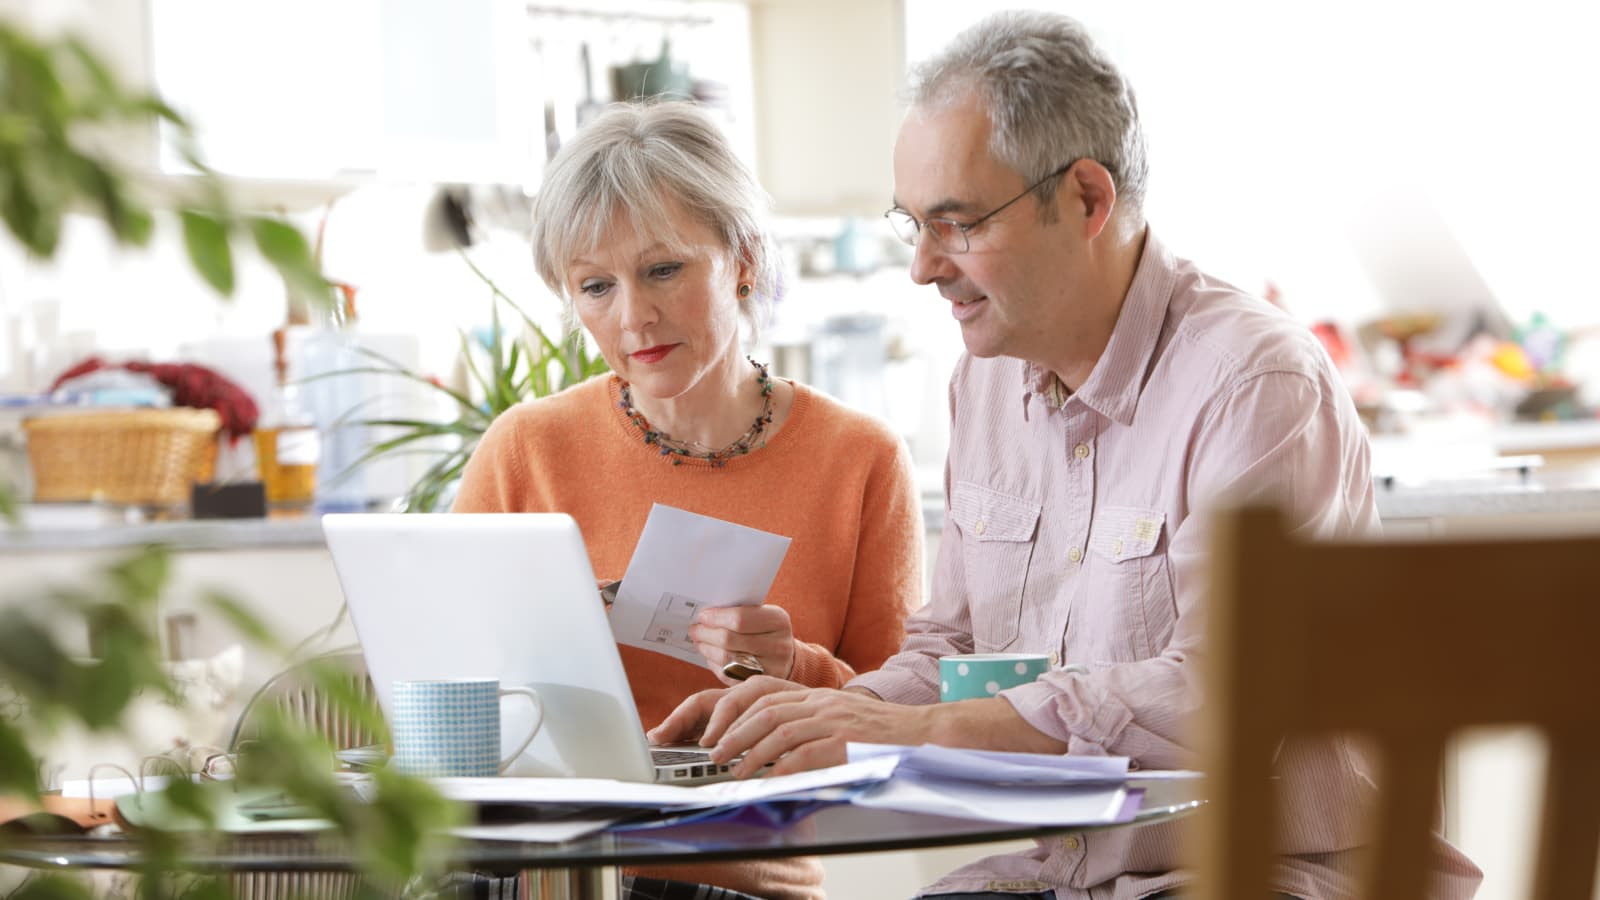 71% of retirement age investors worry rising inflation will negatively affect their savings, survey finds